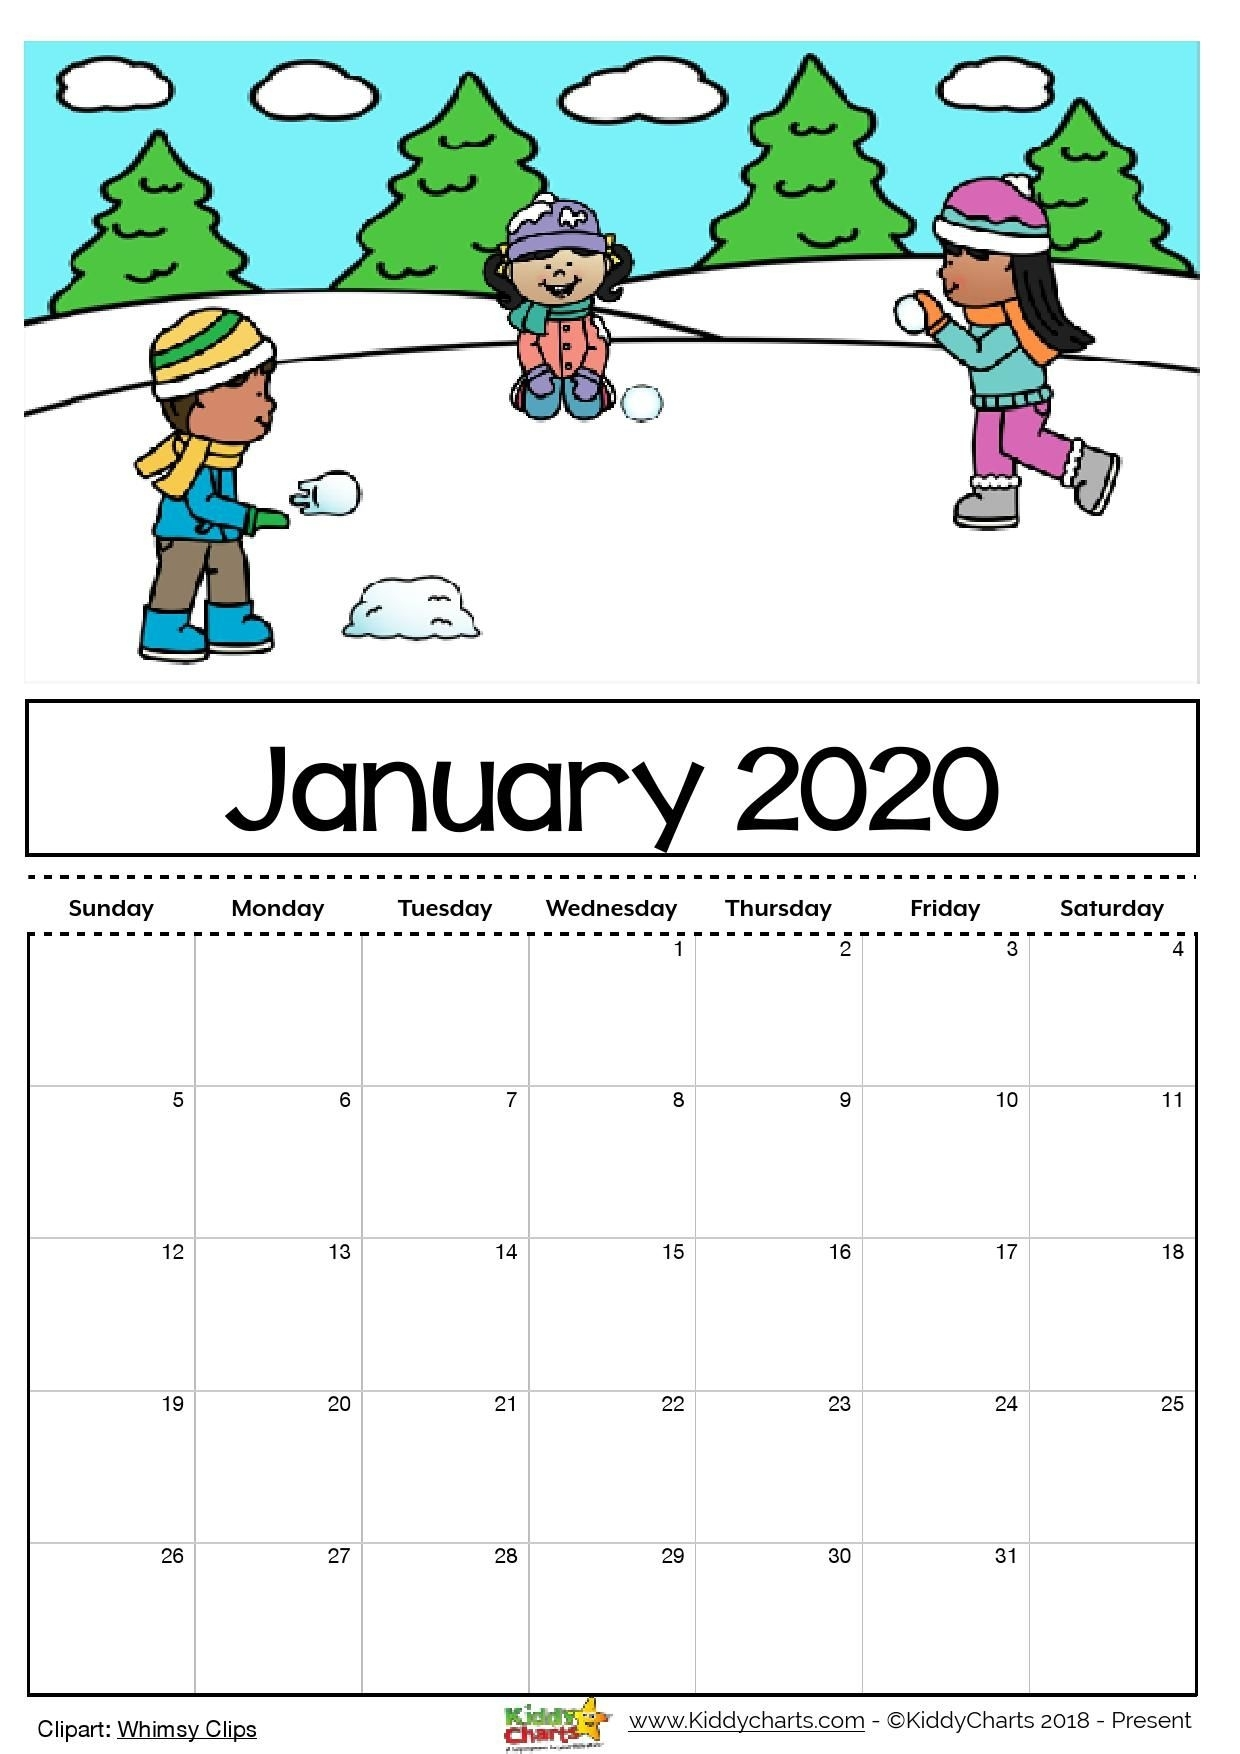 Collect Printable Calendars With Out Download